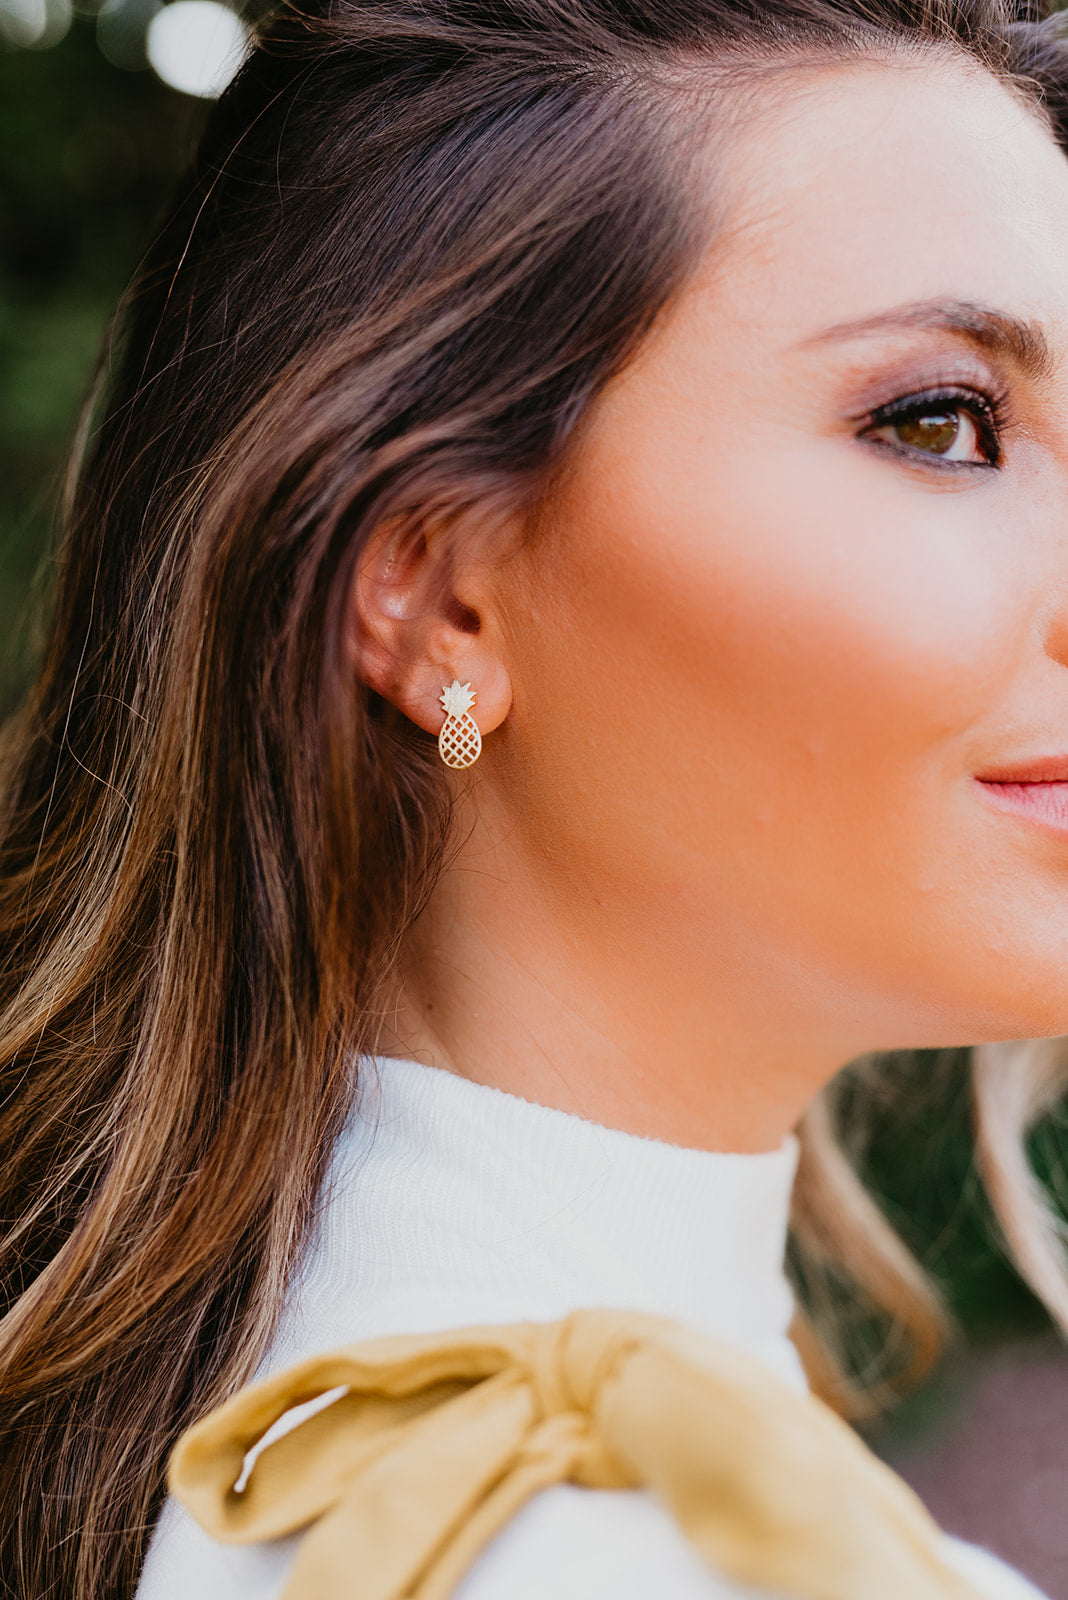 THE PINEAPPLE STUD EARRINGS IN GOLD